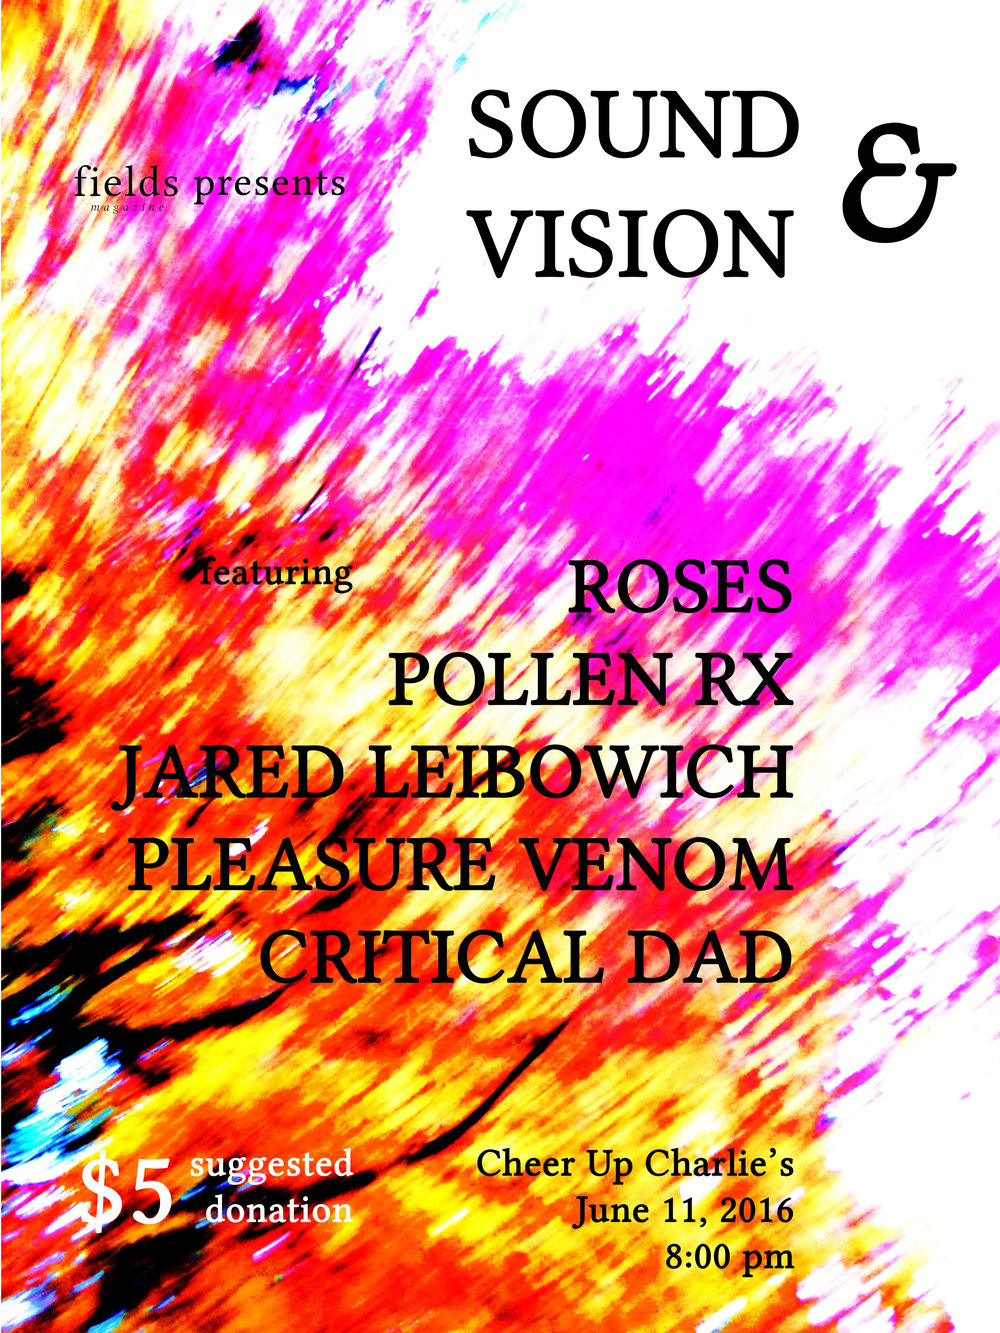 Sound & Vision poster